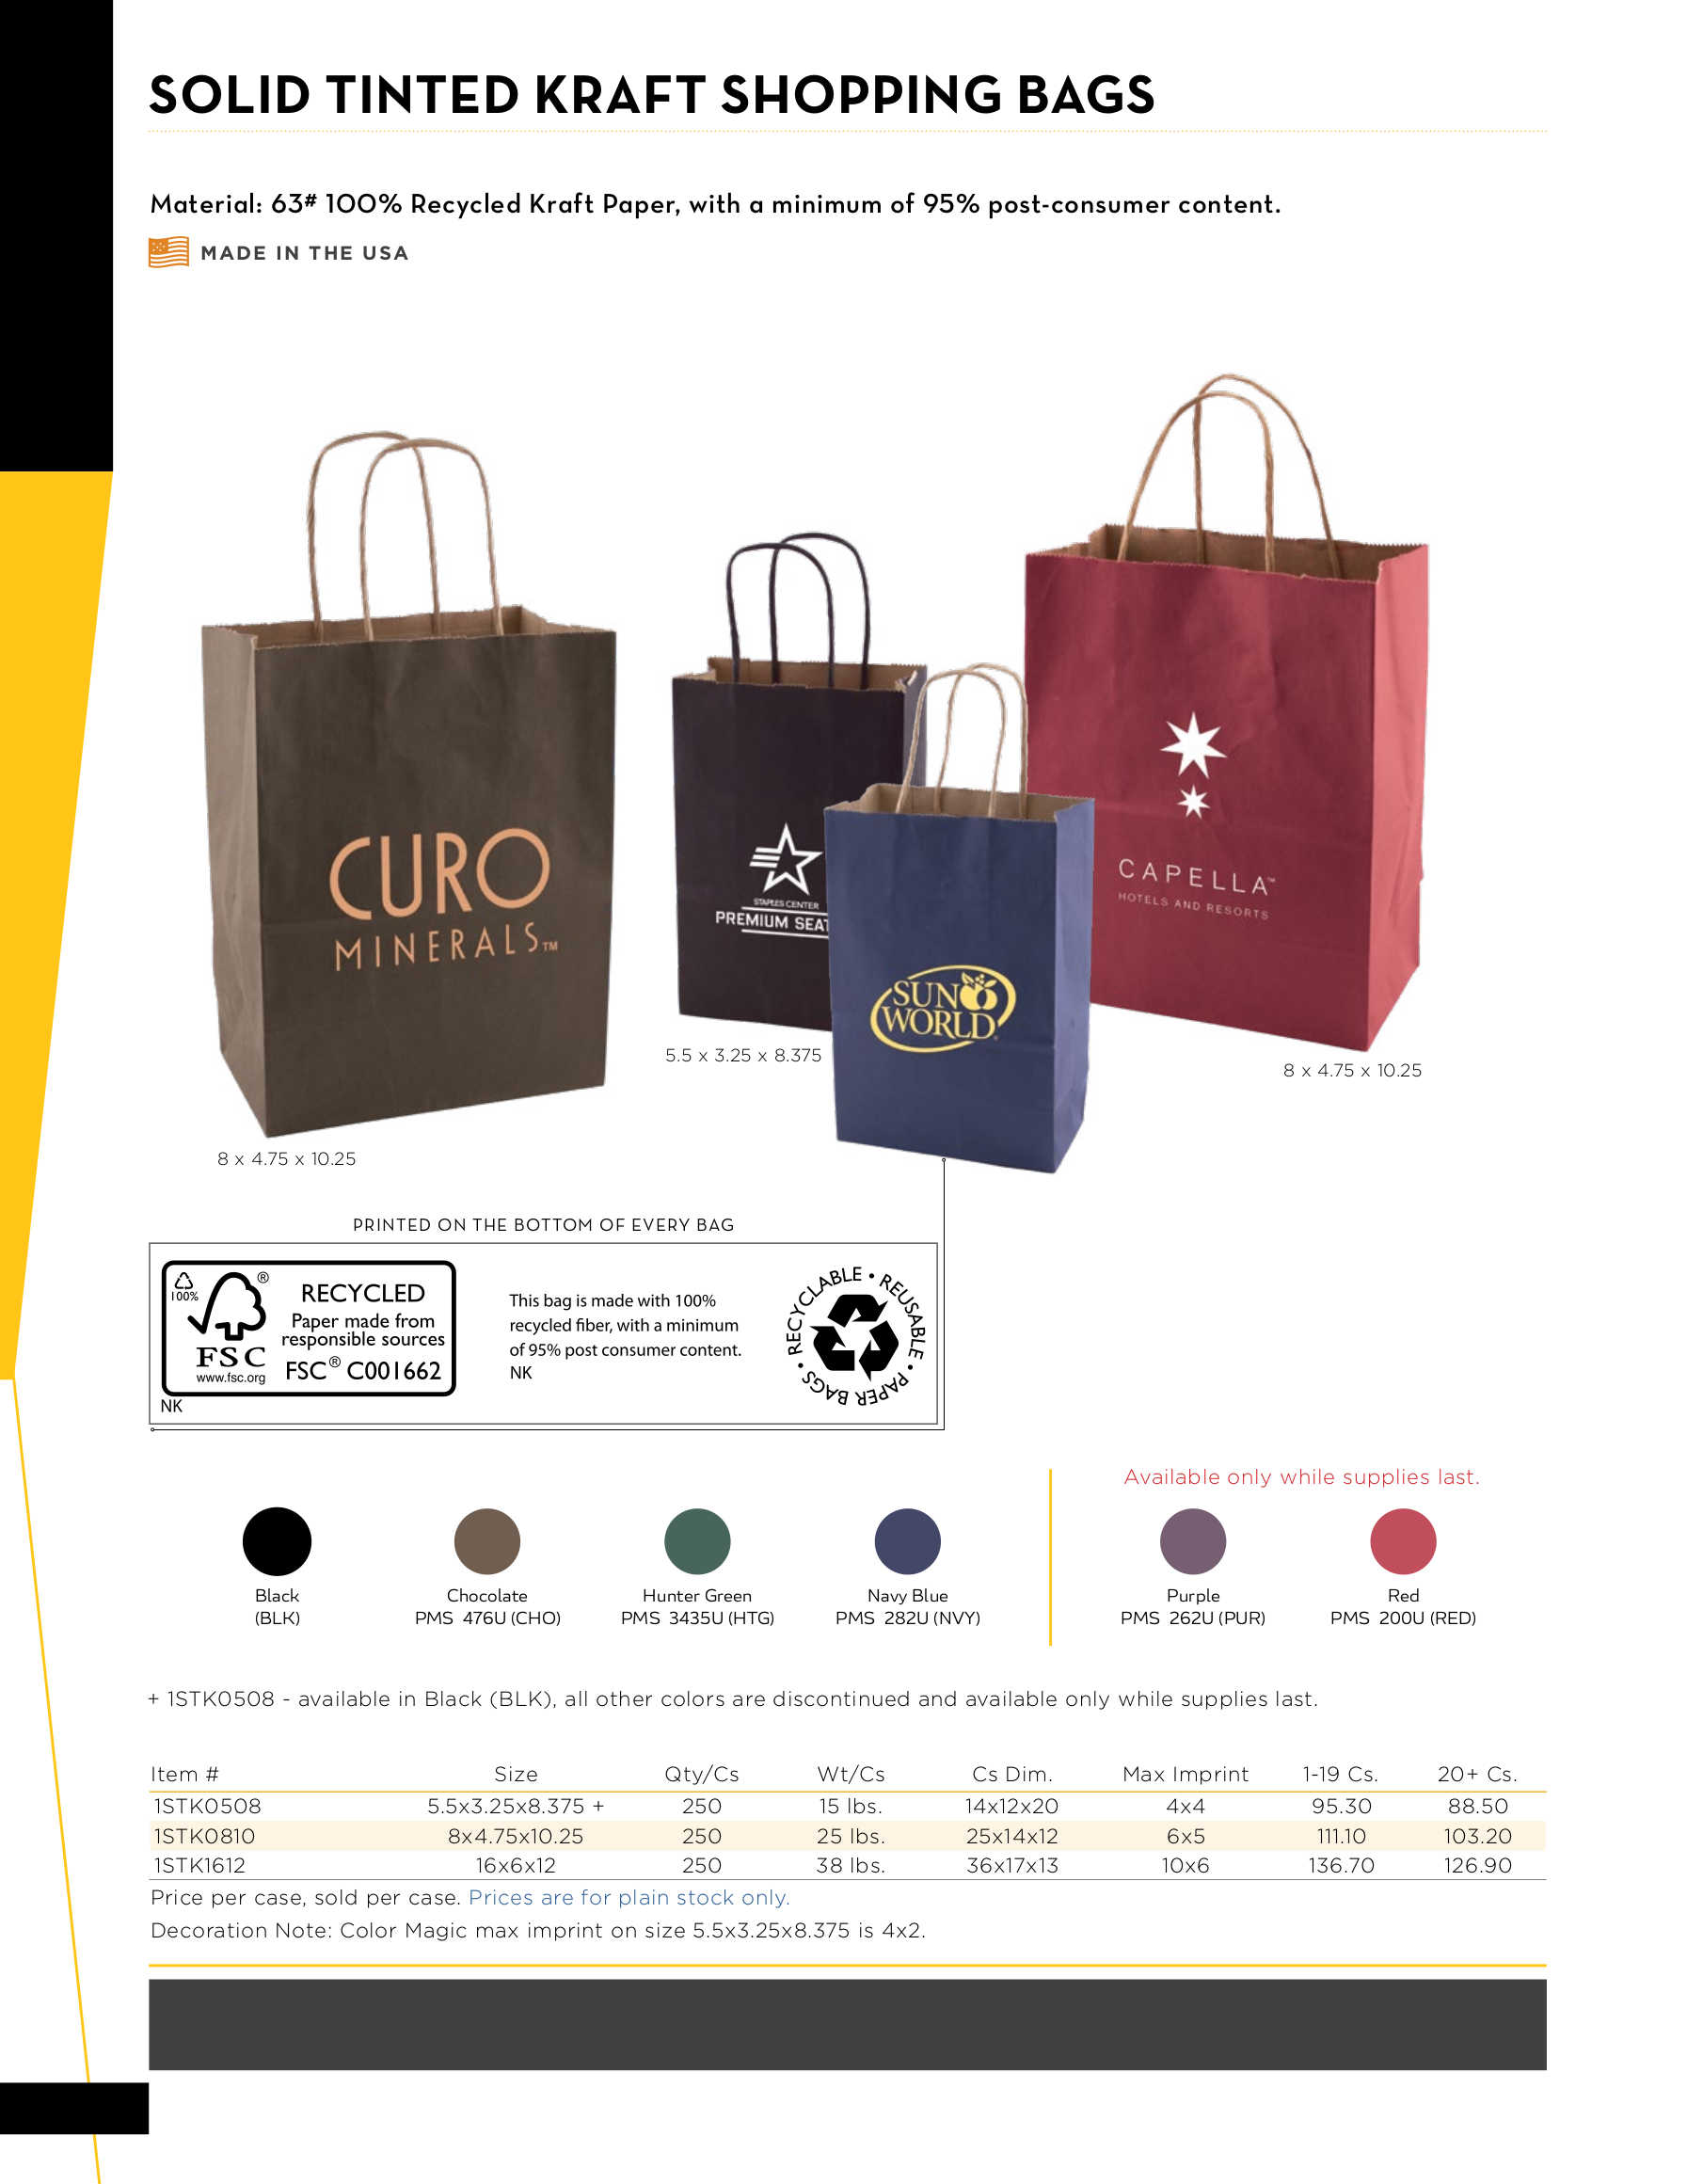 Solid Tinted Shopping Bags